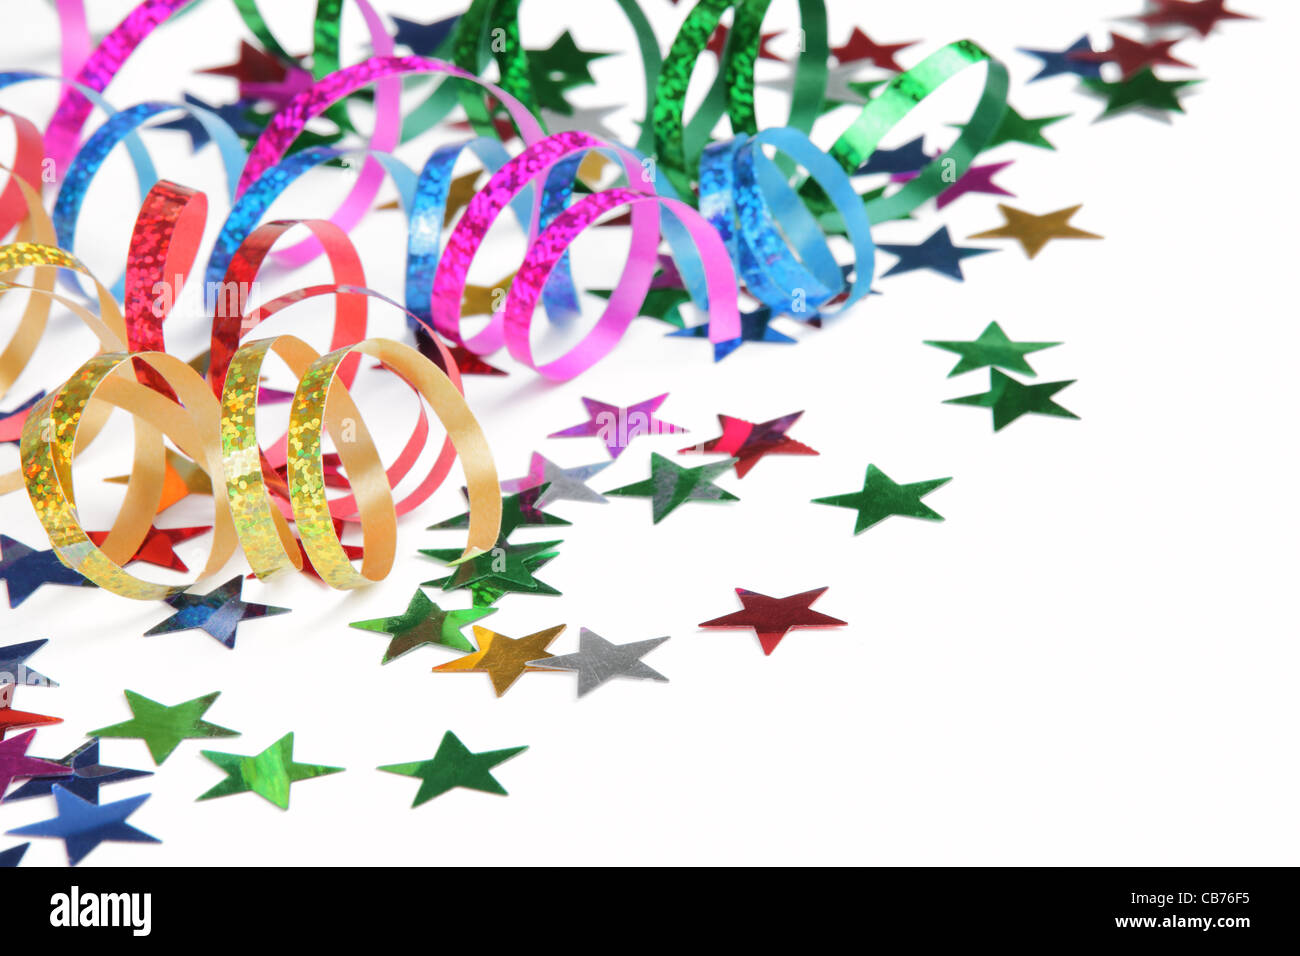 Colorful streamers and confetti on a white background - Stock Image